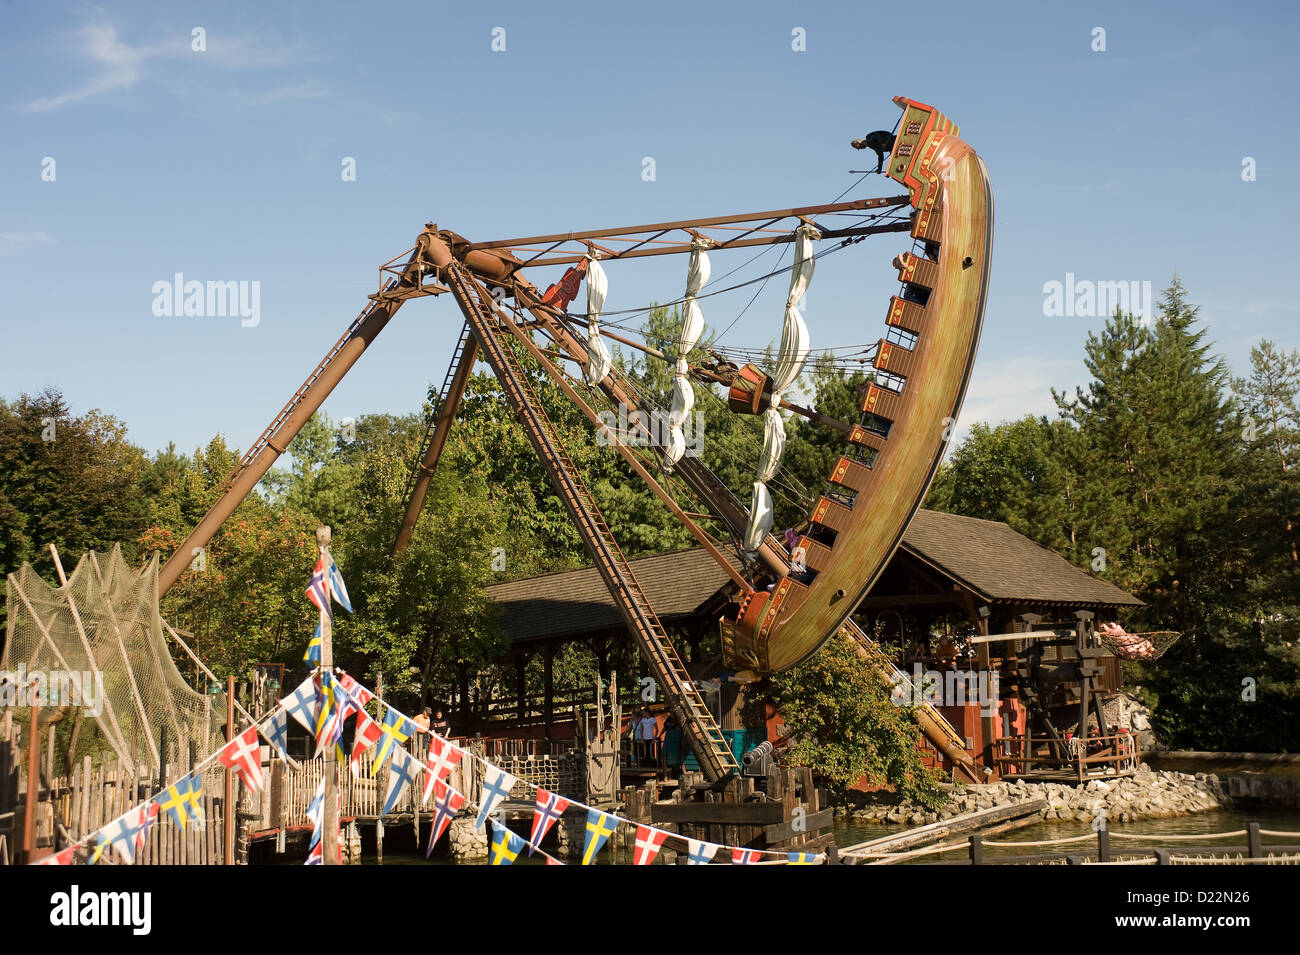 Rust, Germany, giant swing boat at Europa-Park Rust - Stock Image